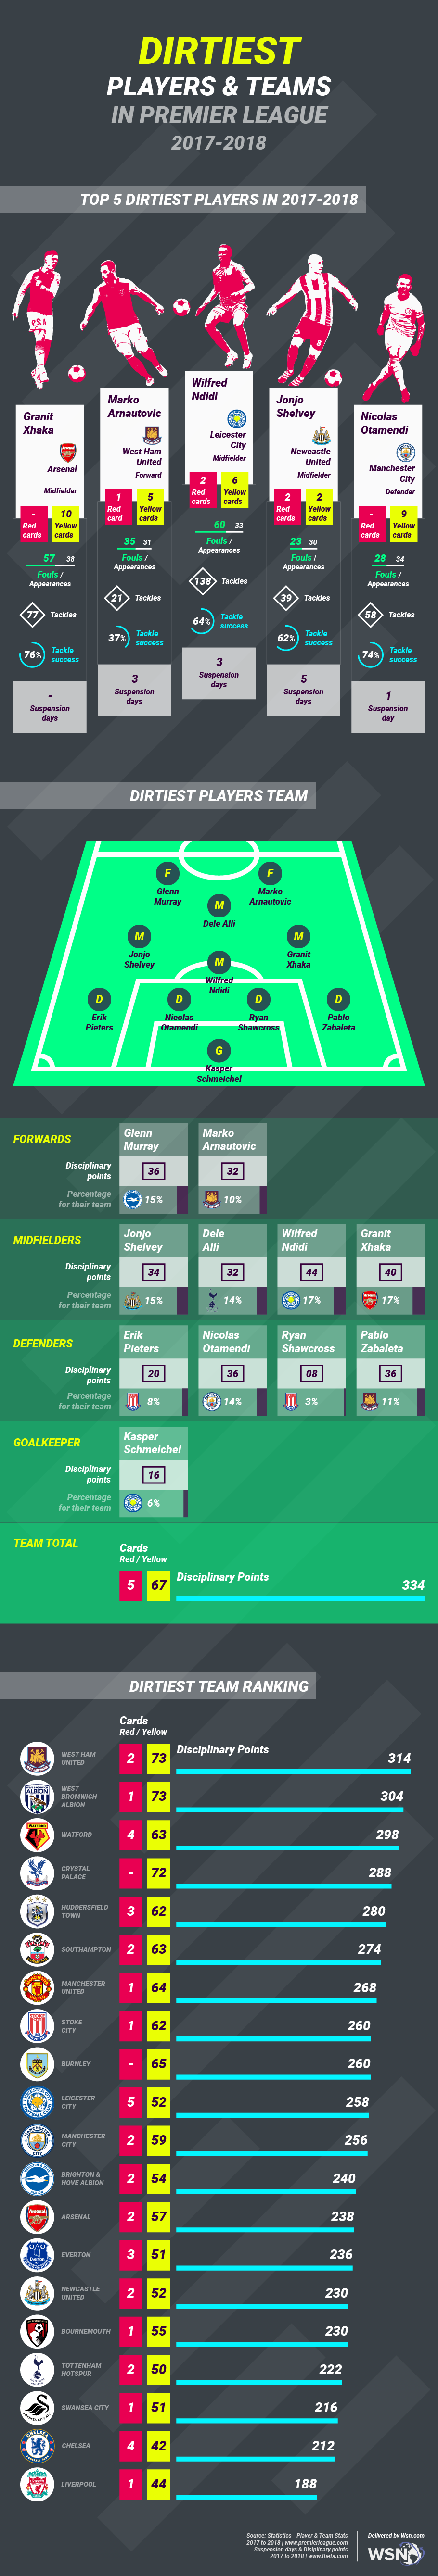 Dirtiest teams and players in the Premier League 2017-2018 Infographic